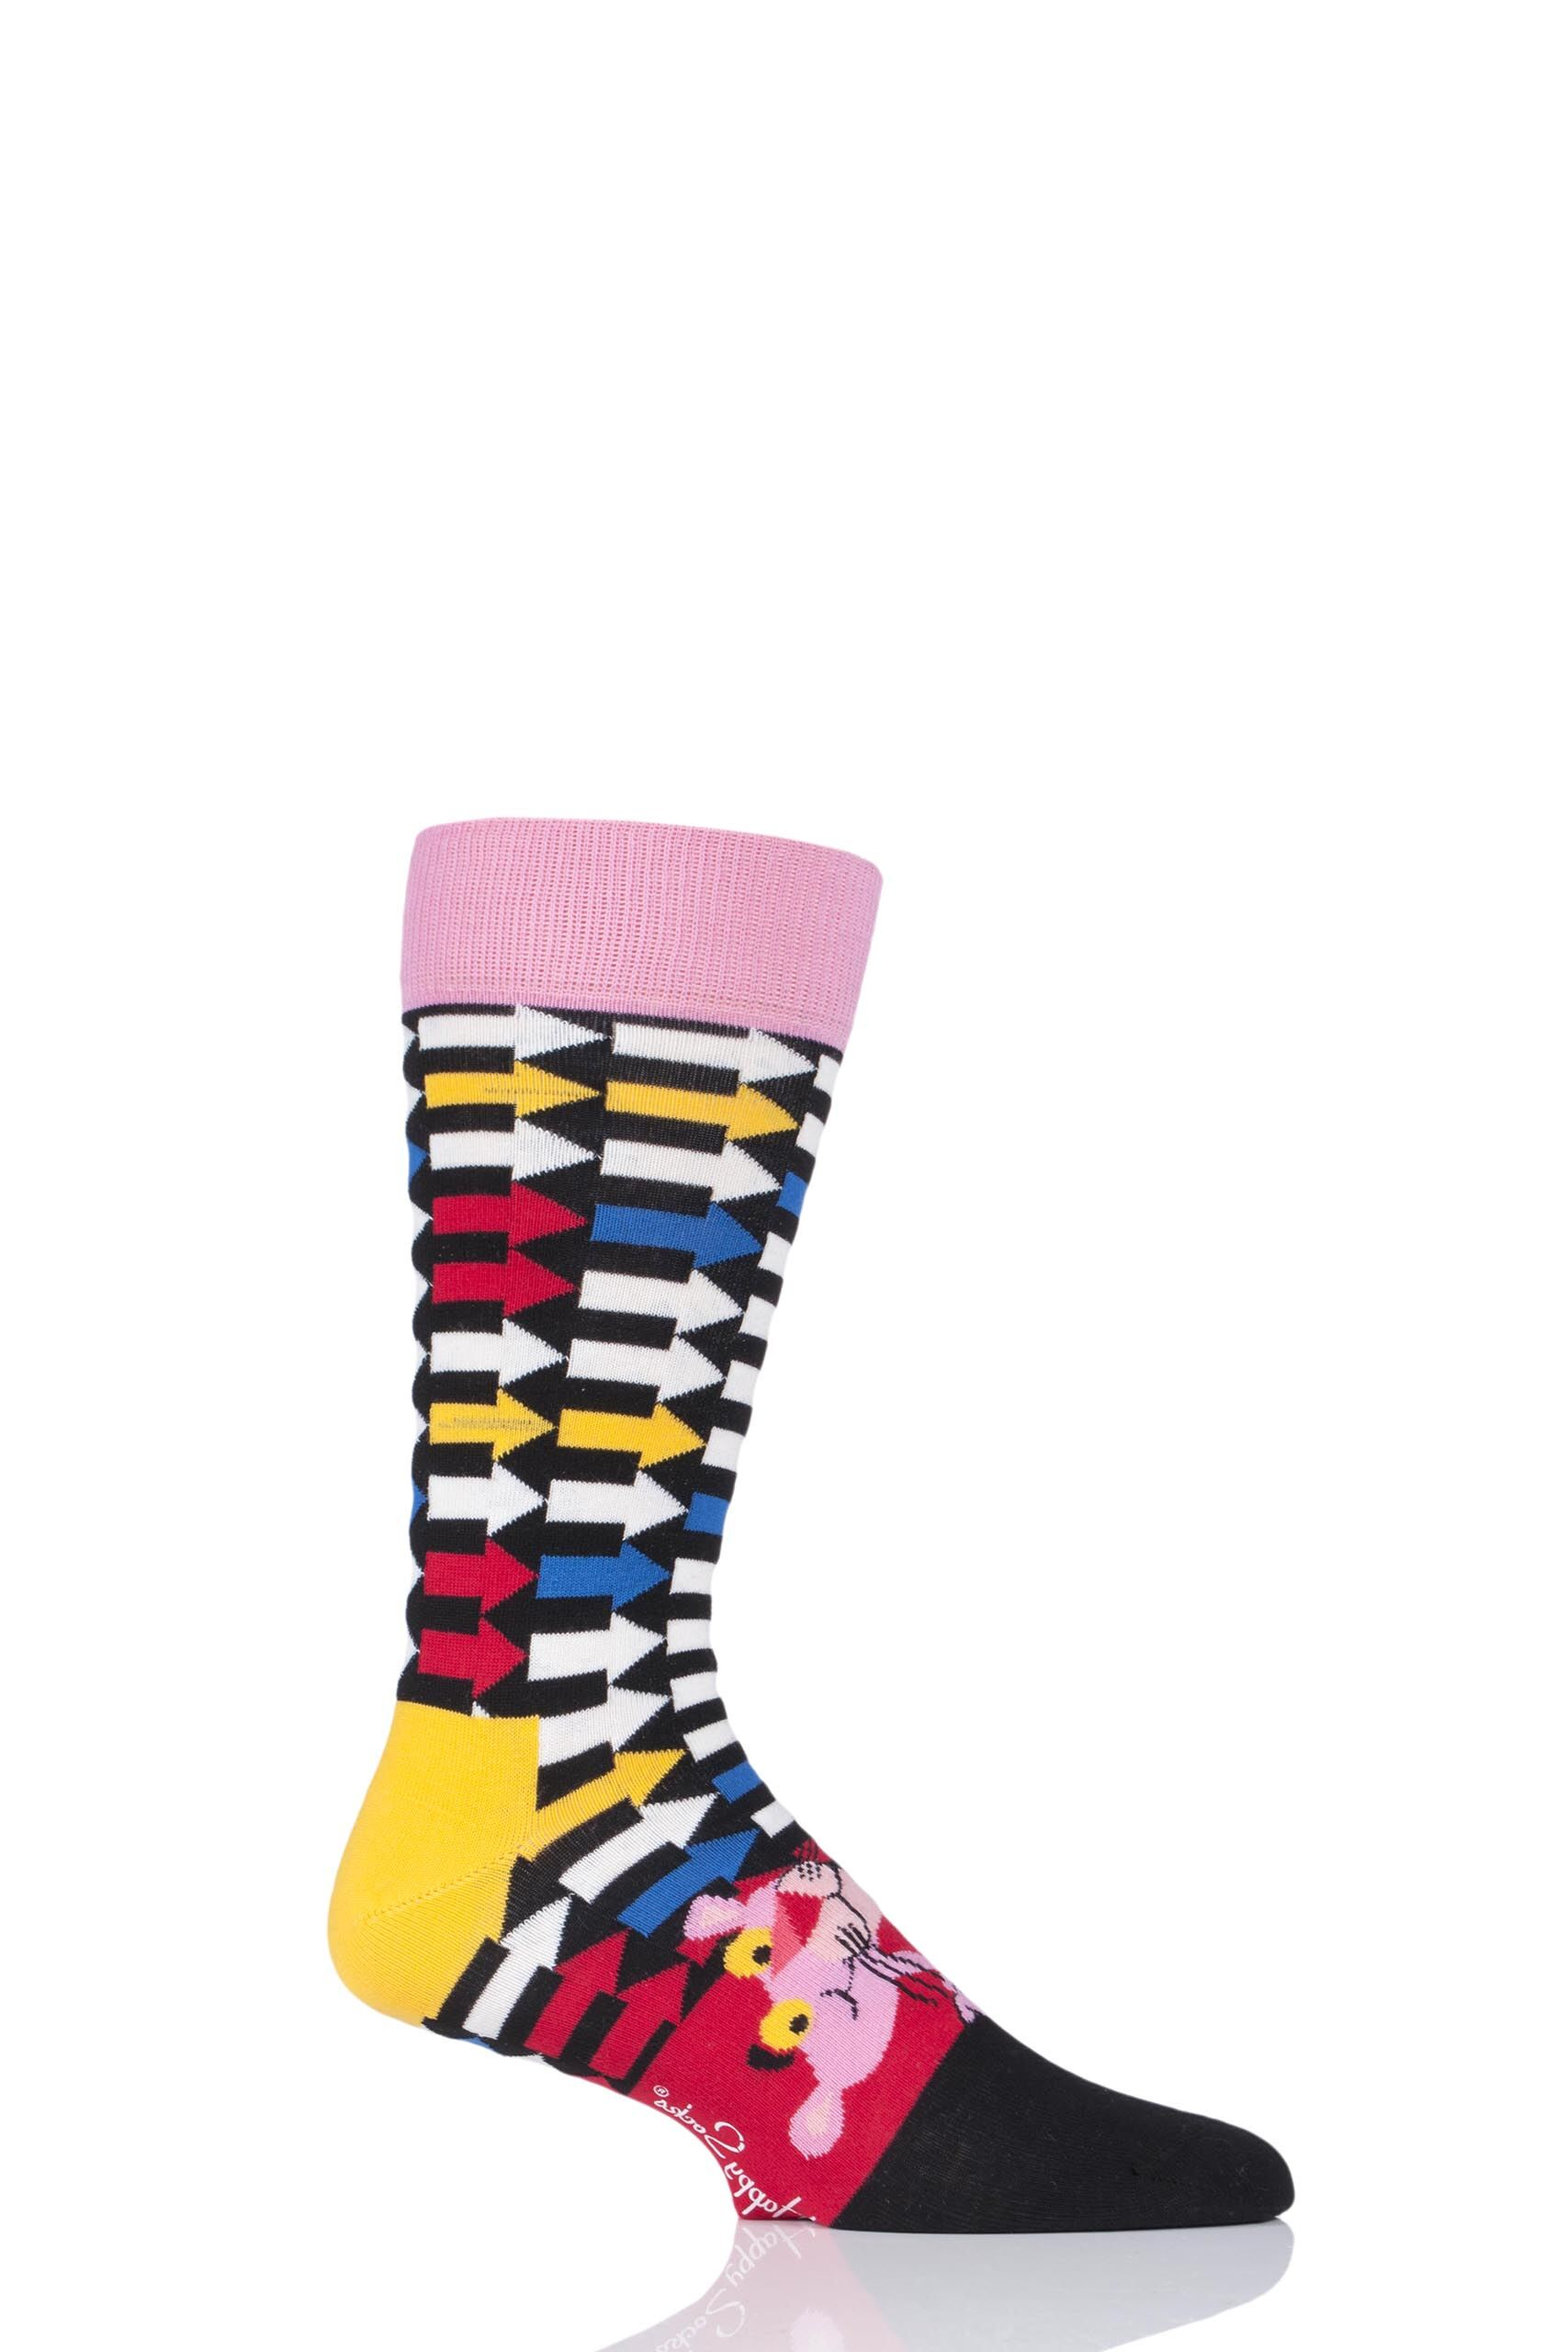 Image of 1 Pair Assorted Pink Panther Jet Pink Cotton Socks Unisex 4-7 Unisex - Happy Socks